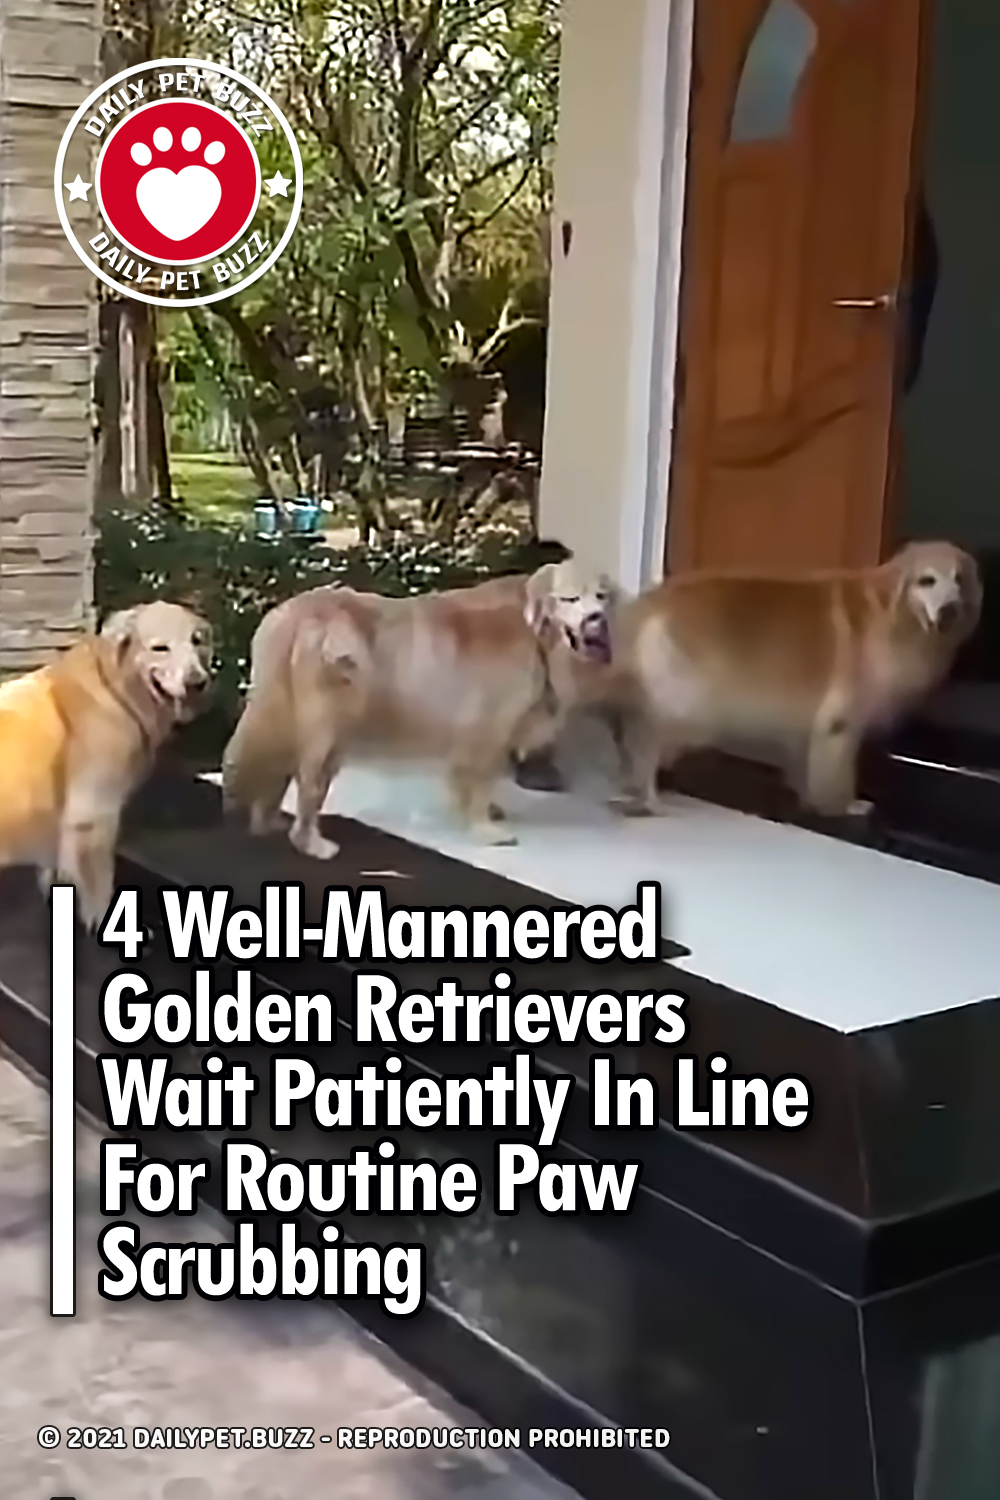 4 Well-Mannered Golden Retrievers Wait Patiently In Line For Routine Paw Scrubbing